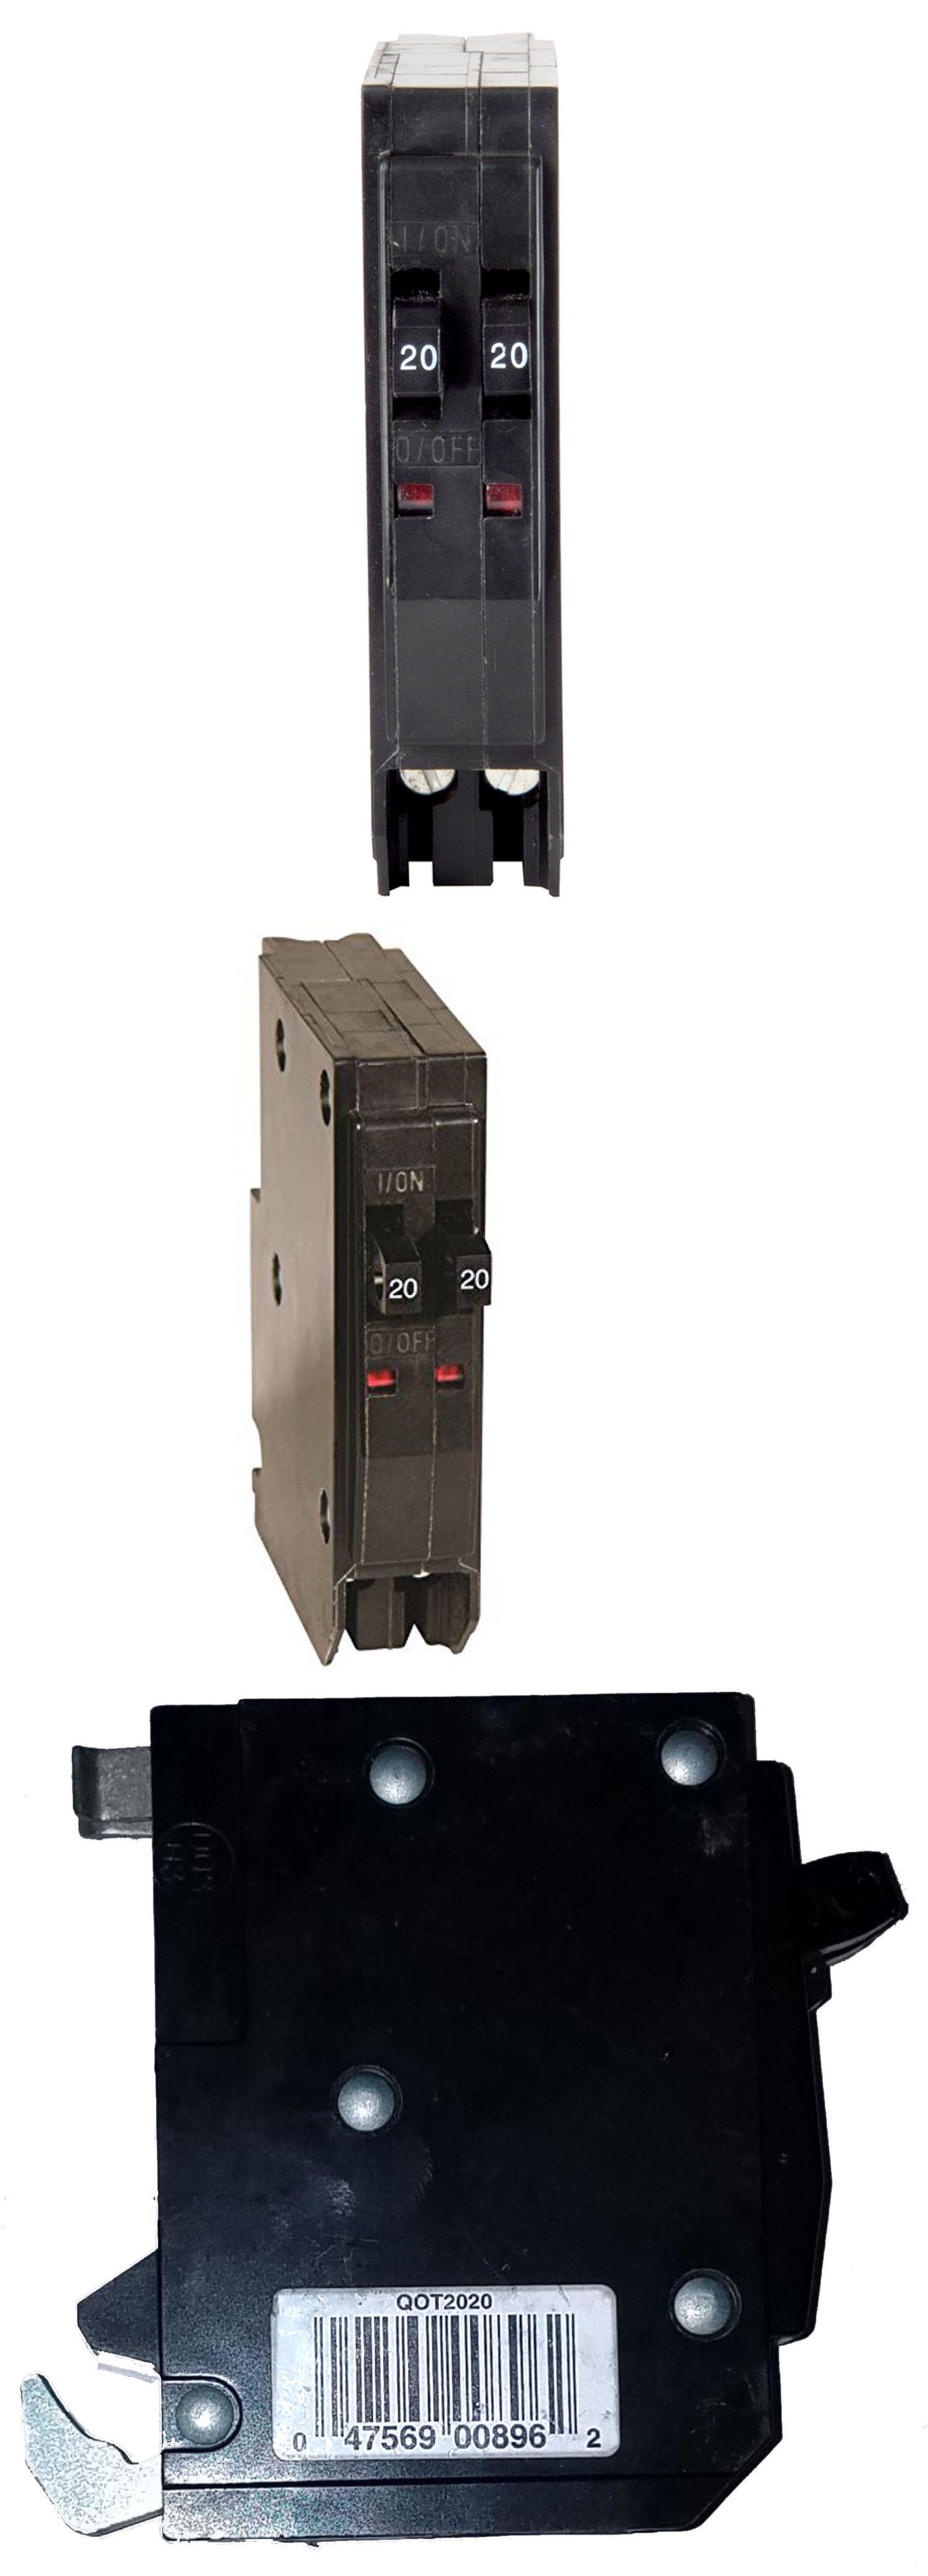 small resolution of circuit breakers and fuse boxes 20596 square d qo 20 amp 1 pole tandem circuit breaker buy it now only 15 on ebay circuit breakers boxes square